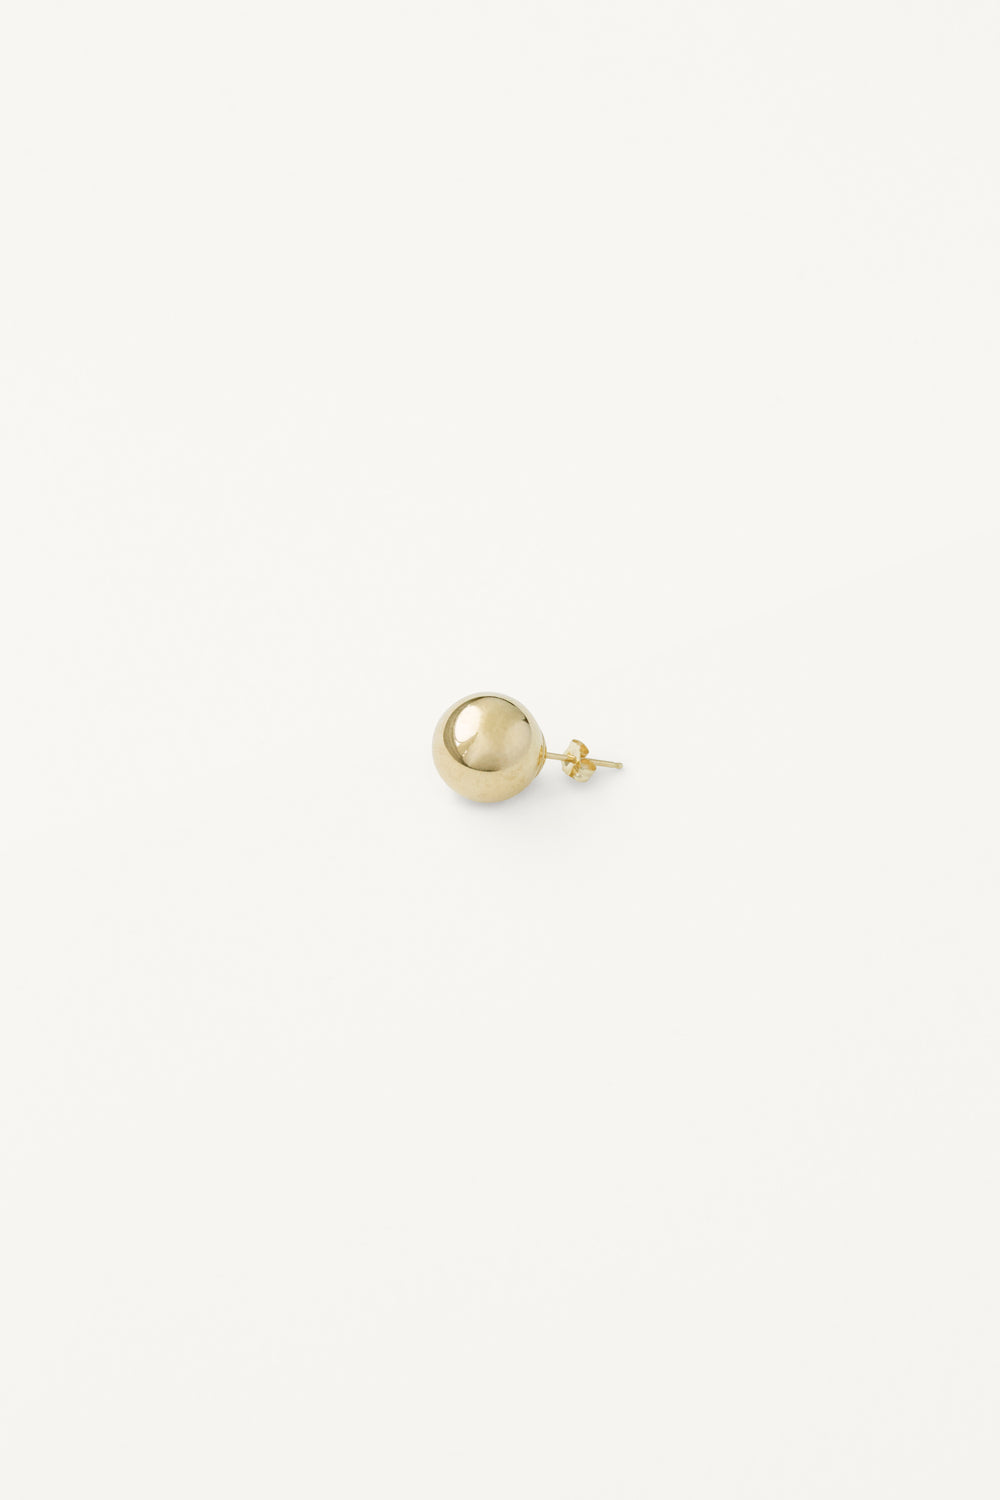 Medium Sphere Stud in Gold